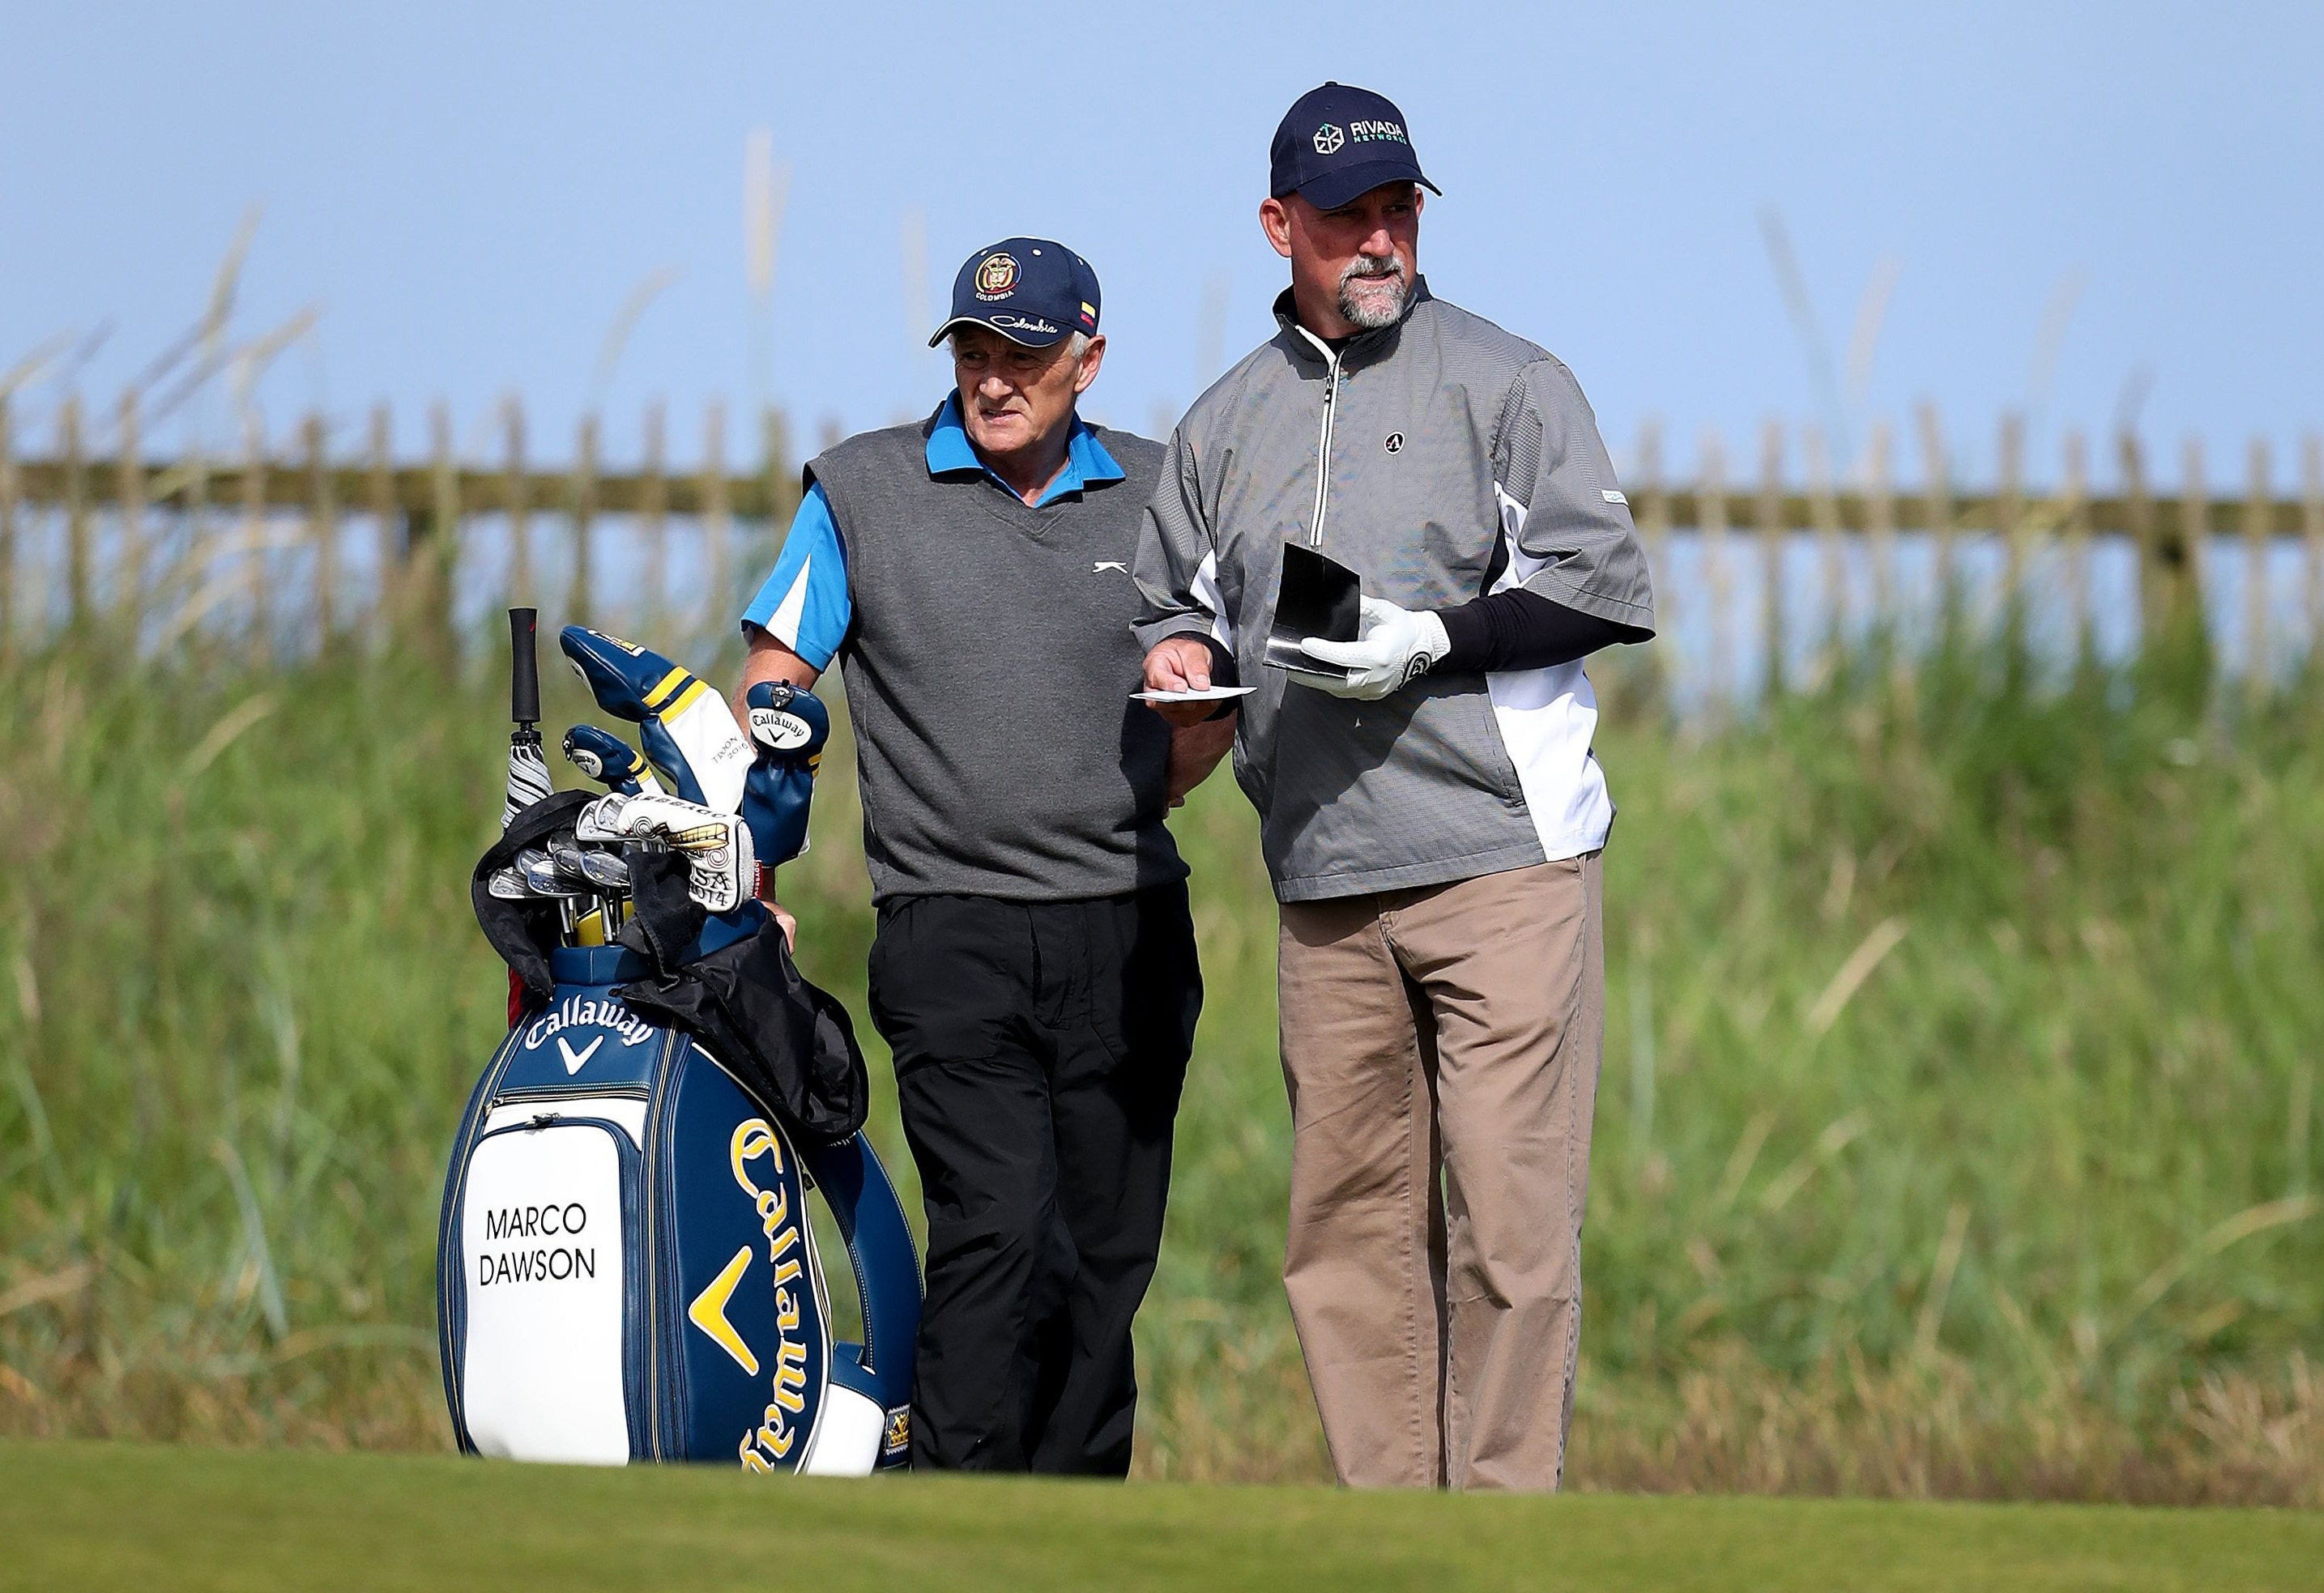 Marco Dawson of the U.S and his caddie William Ciplinski, left, during a practice round ahead of the British Open Golf Championships at the Royal Troon Golf Club in Troon, Scotland, Wednesday, July 13, 2016. Marco Dawson's caddie has been taken to hospita